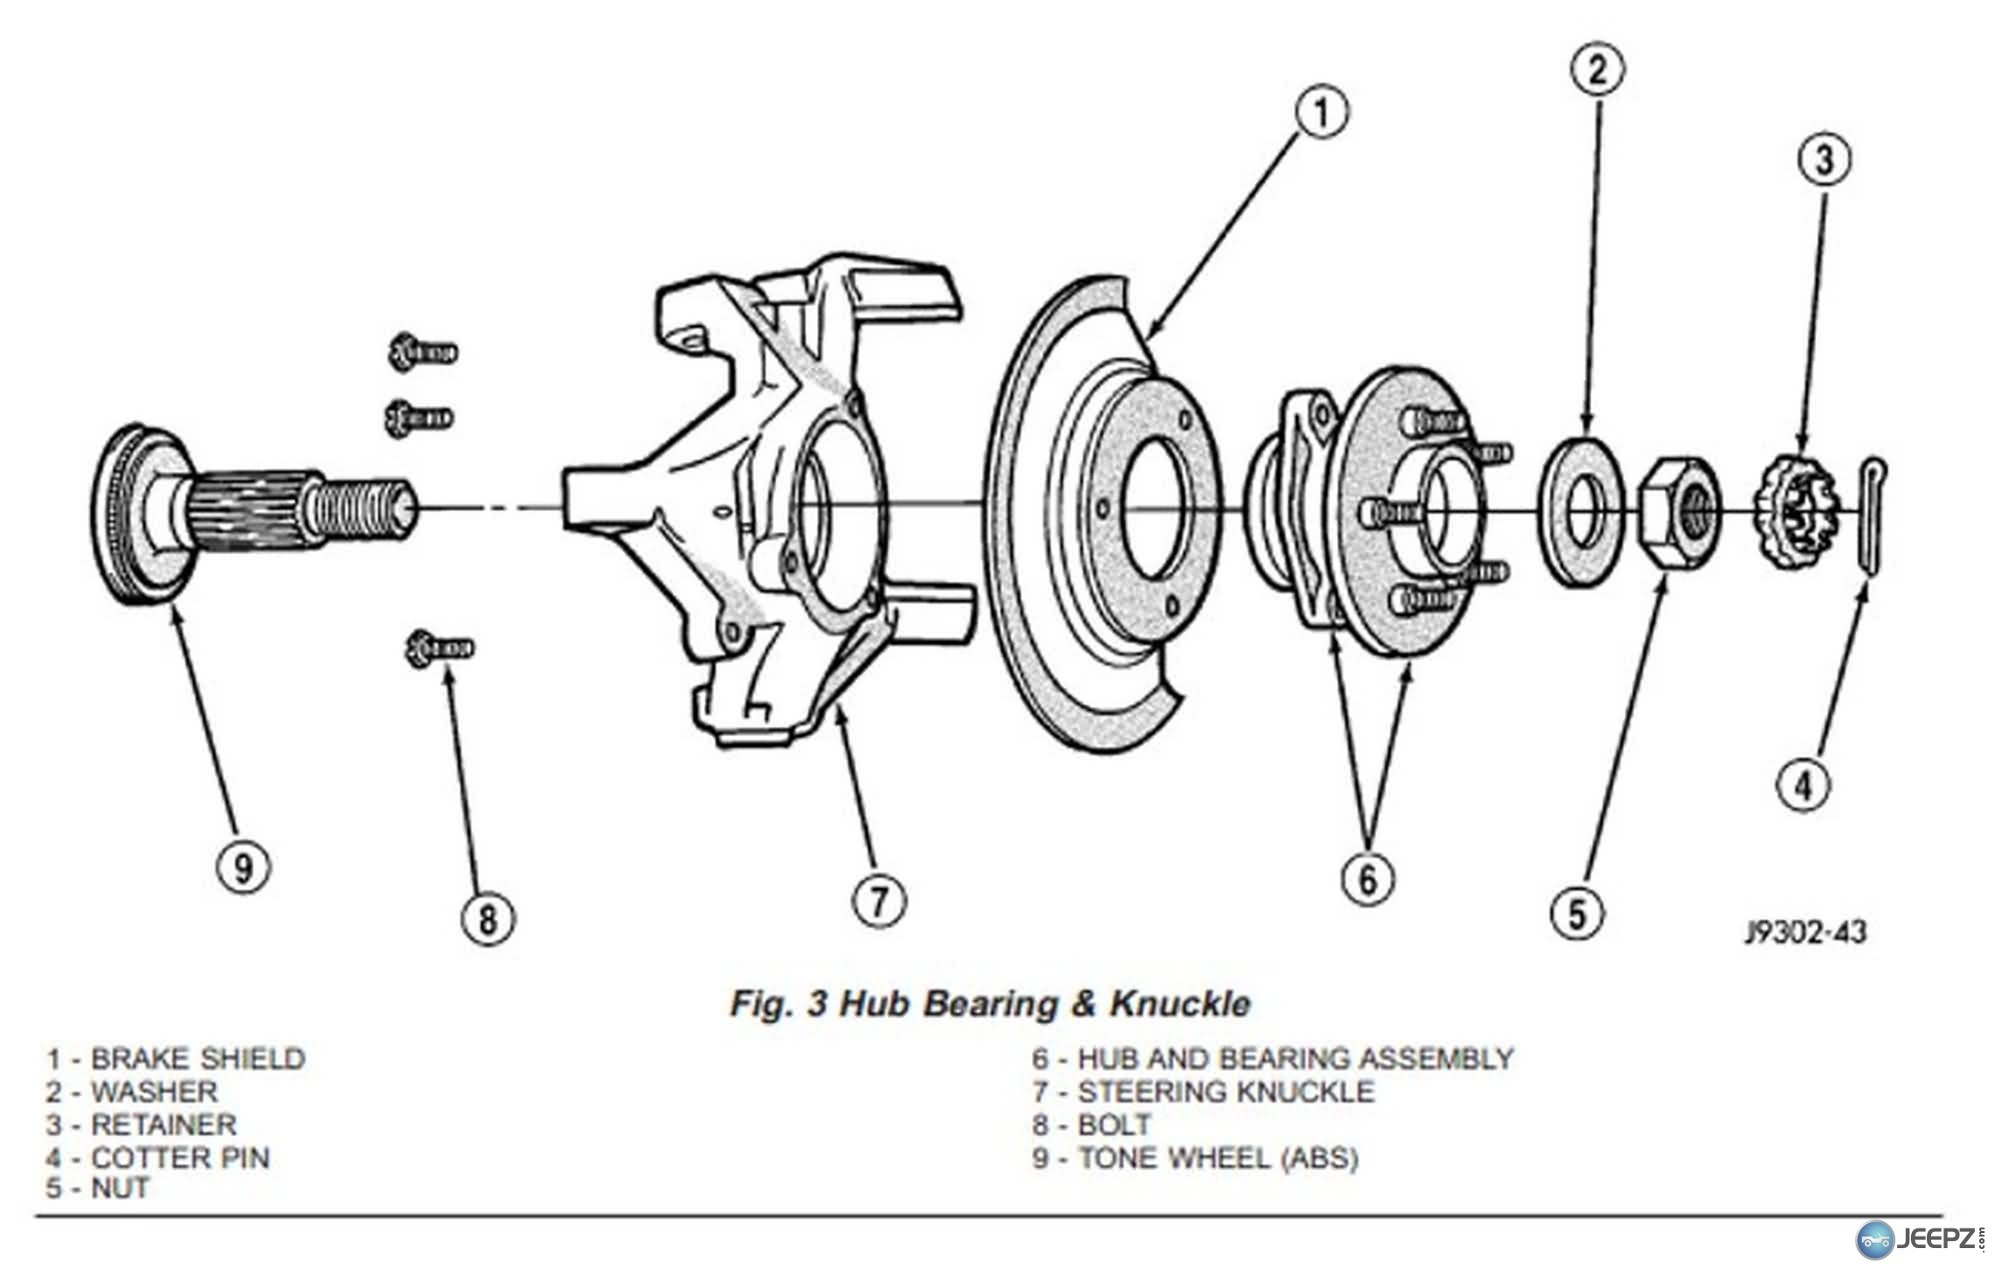 Trailer Wheel Hub assembly Diagram Bantam T3 C Converting Hubs to 5×4 1 2 Bolt Pattern Of Trailer Wheel Hub assembly Diagram